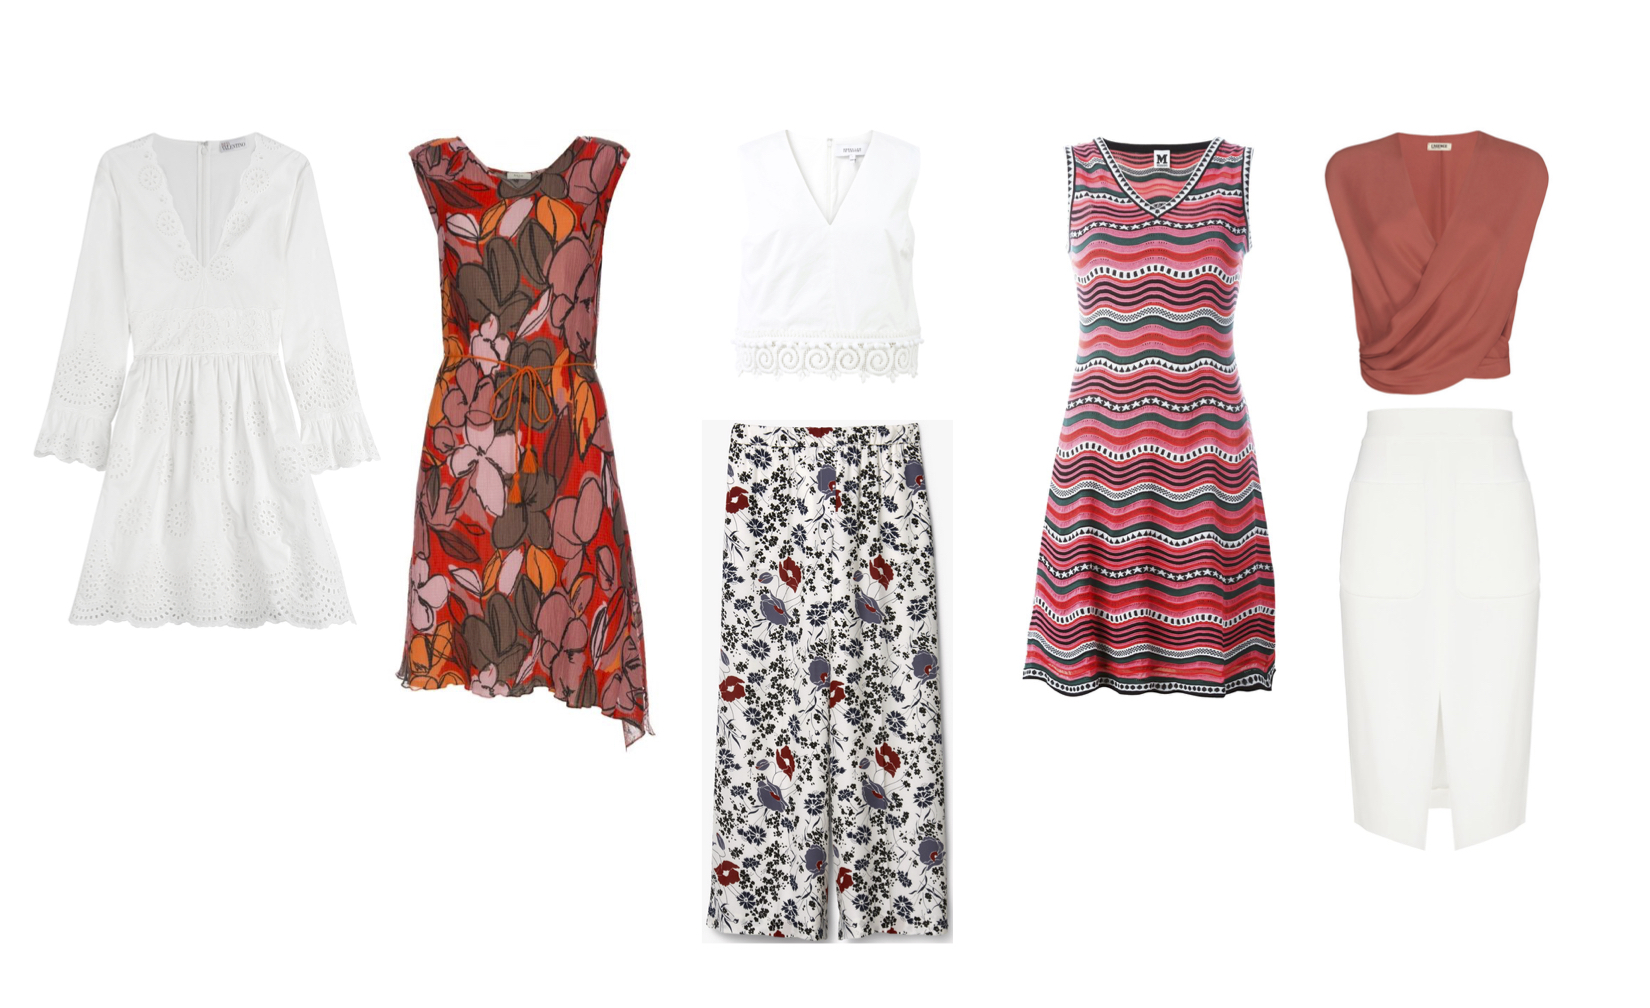 """From L to R: Red Valentino cotton eyelet lace dress, Paul Smith cotton dress, Derek Lam 10 Crosby cotton top with lace trim, Theory """"Raoka"""" floral print pants, M Missoni dress, L'Agence """"T Lee"""" silk blouse and """"Mackenzie"""" skirt."""